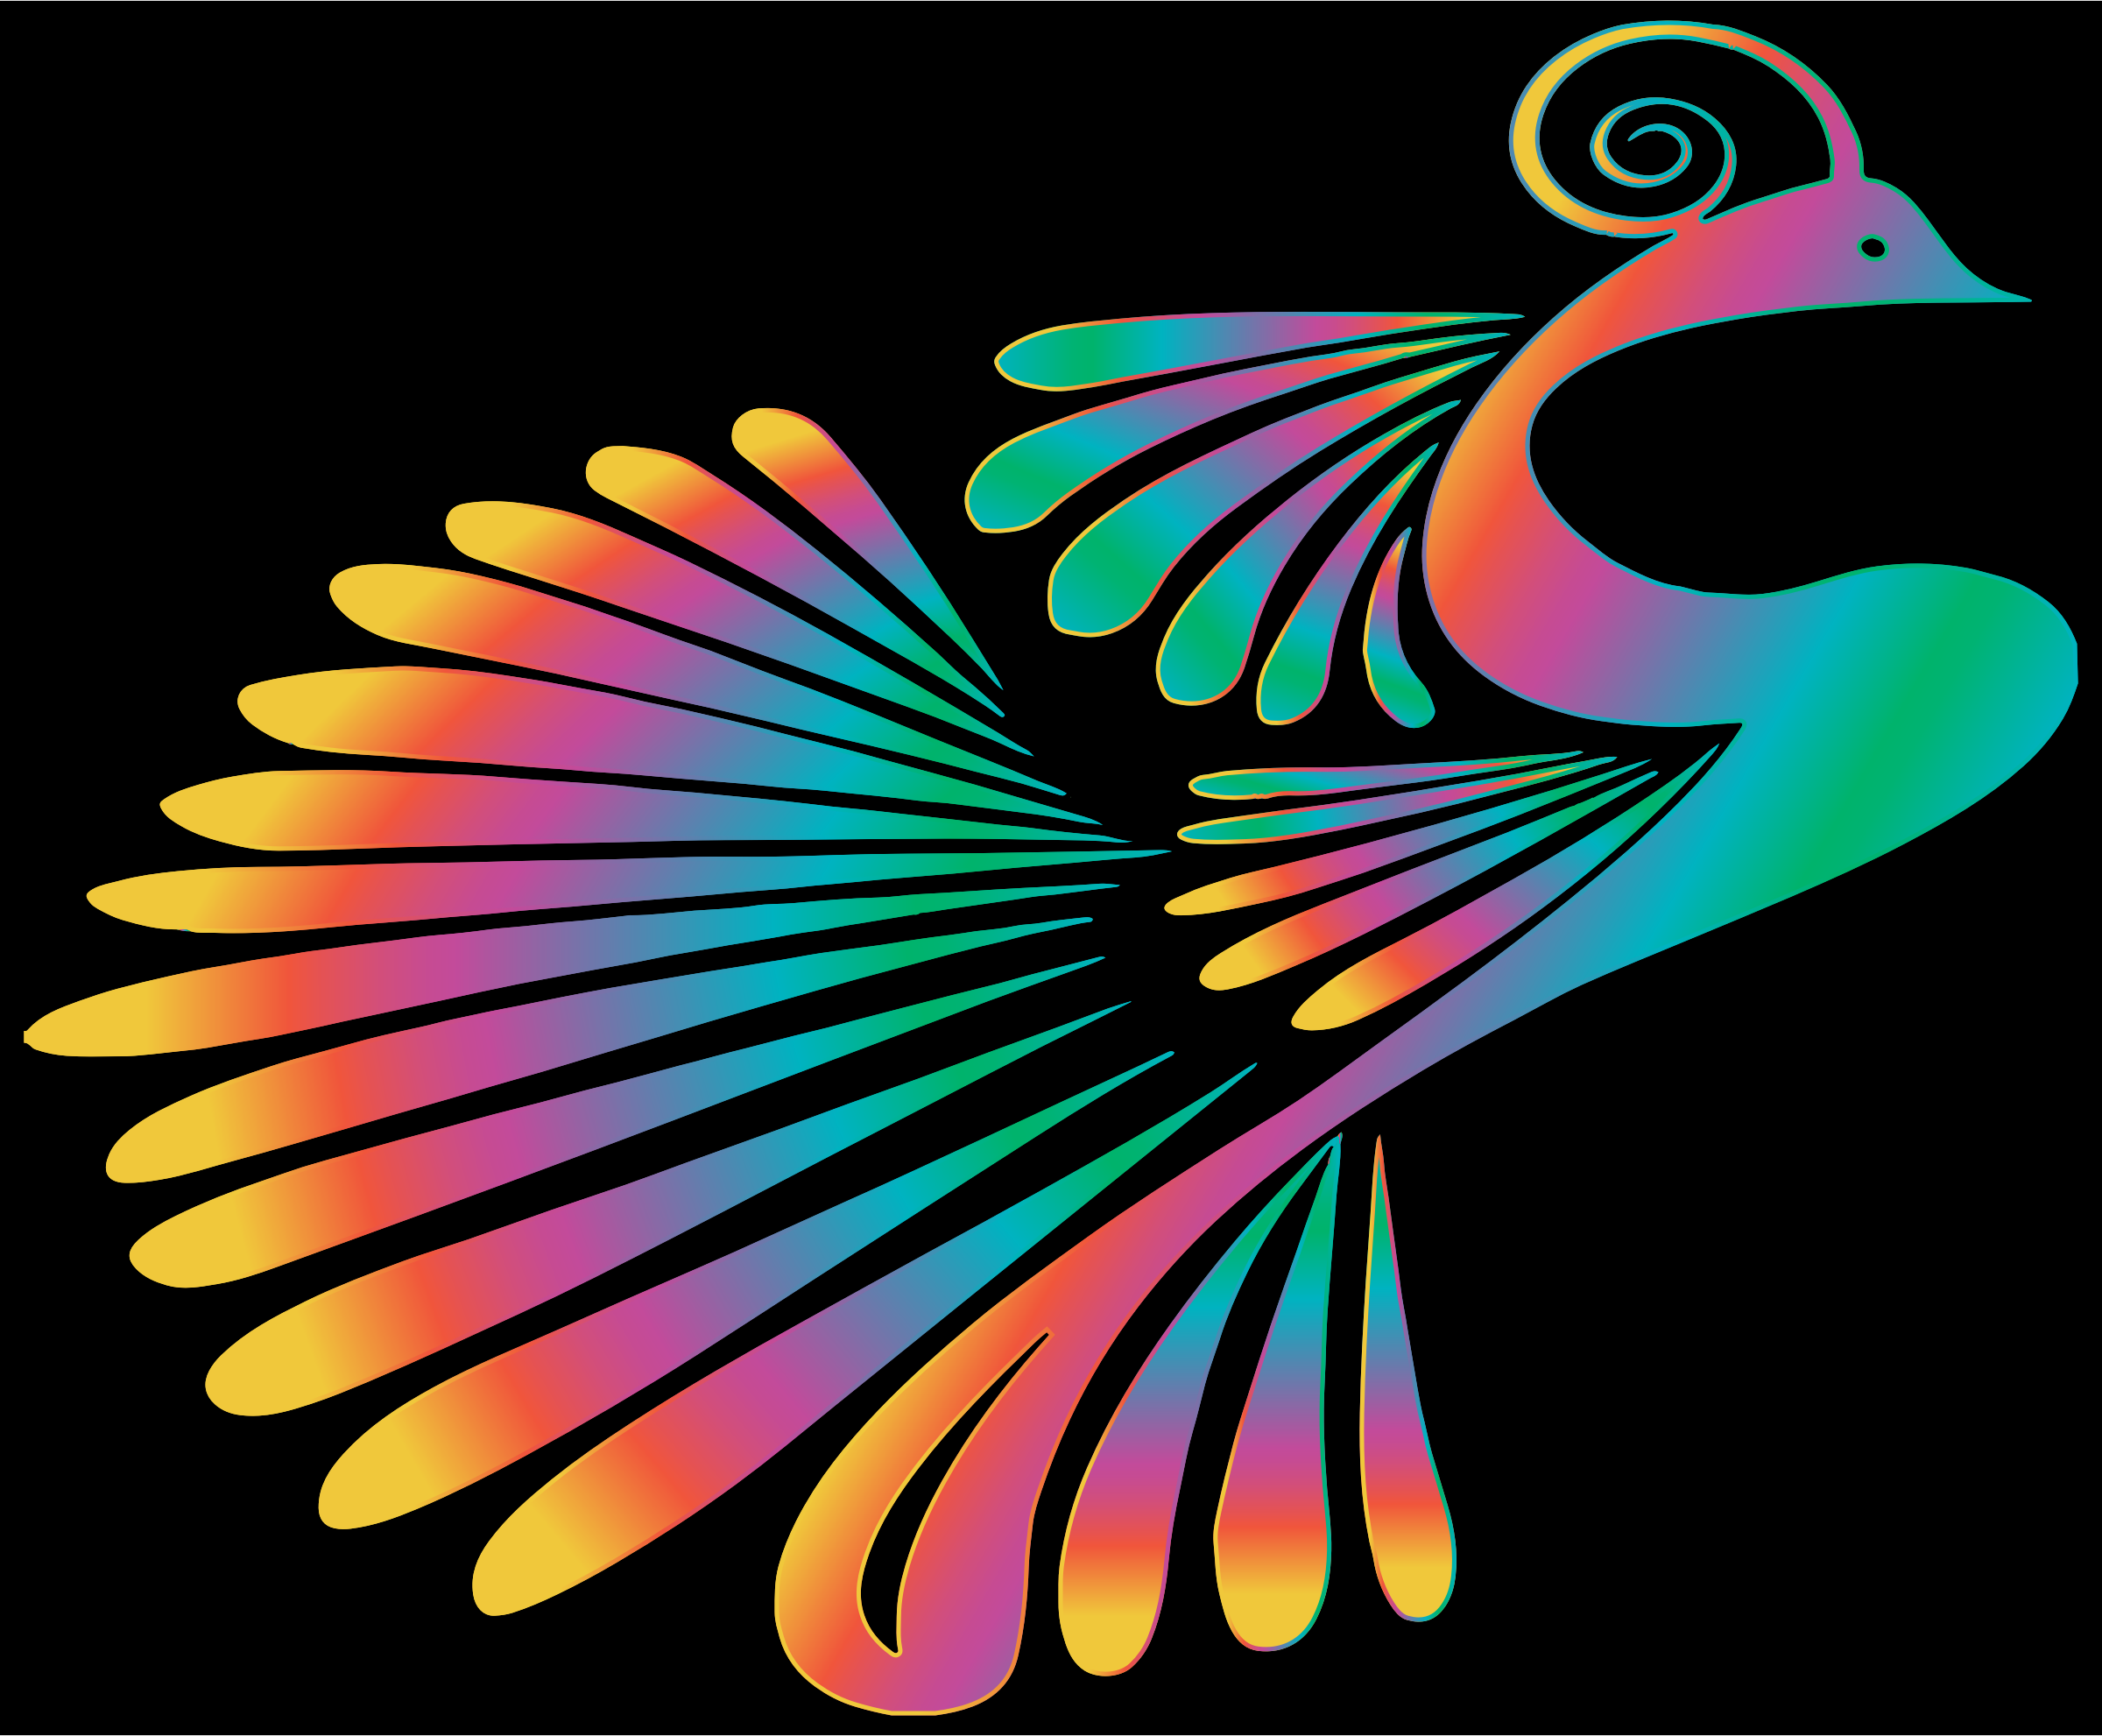 Colorful Stylized Peacock 15 by GDJ